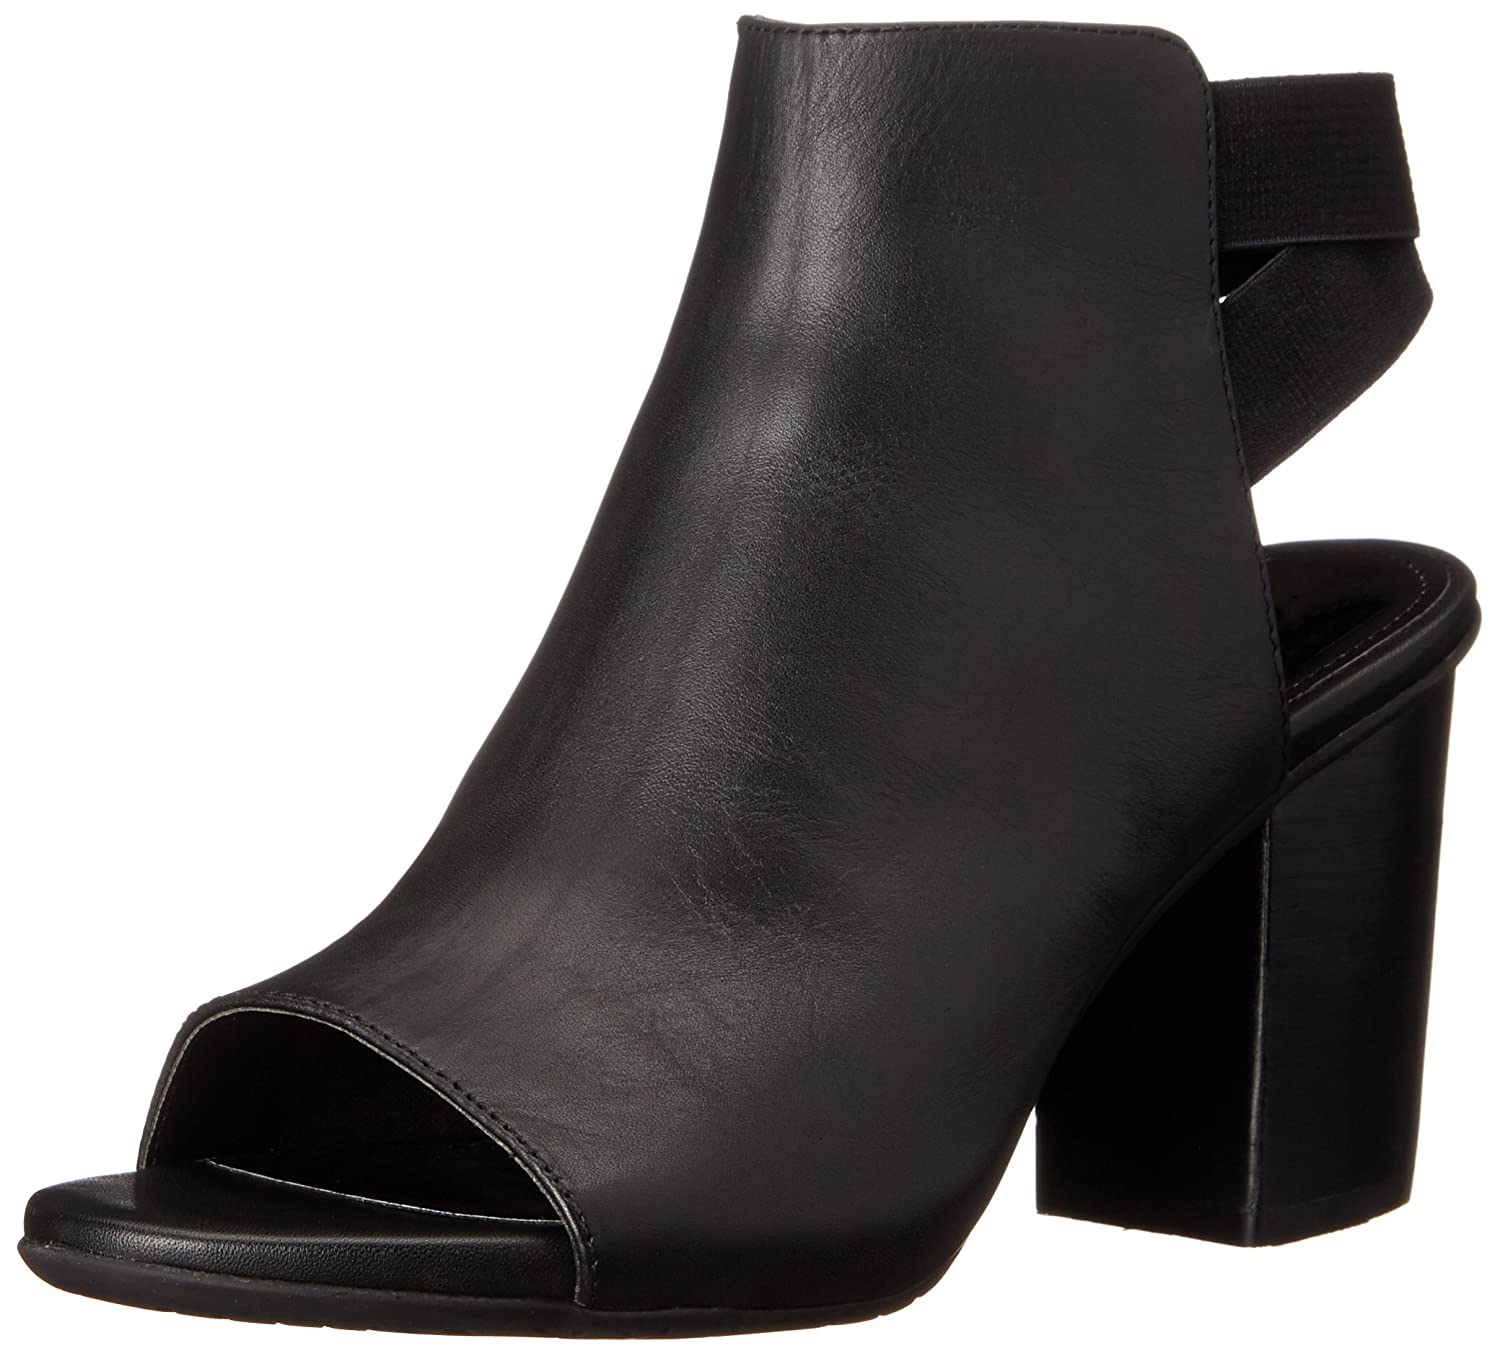 Kenneth Cole REACTION Women's Fridah Fly Ankle Bootie B0113P9A4C 5.5 B(M) US|Black